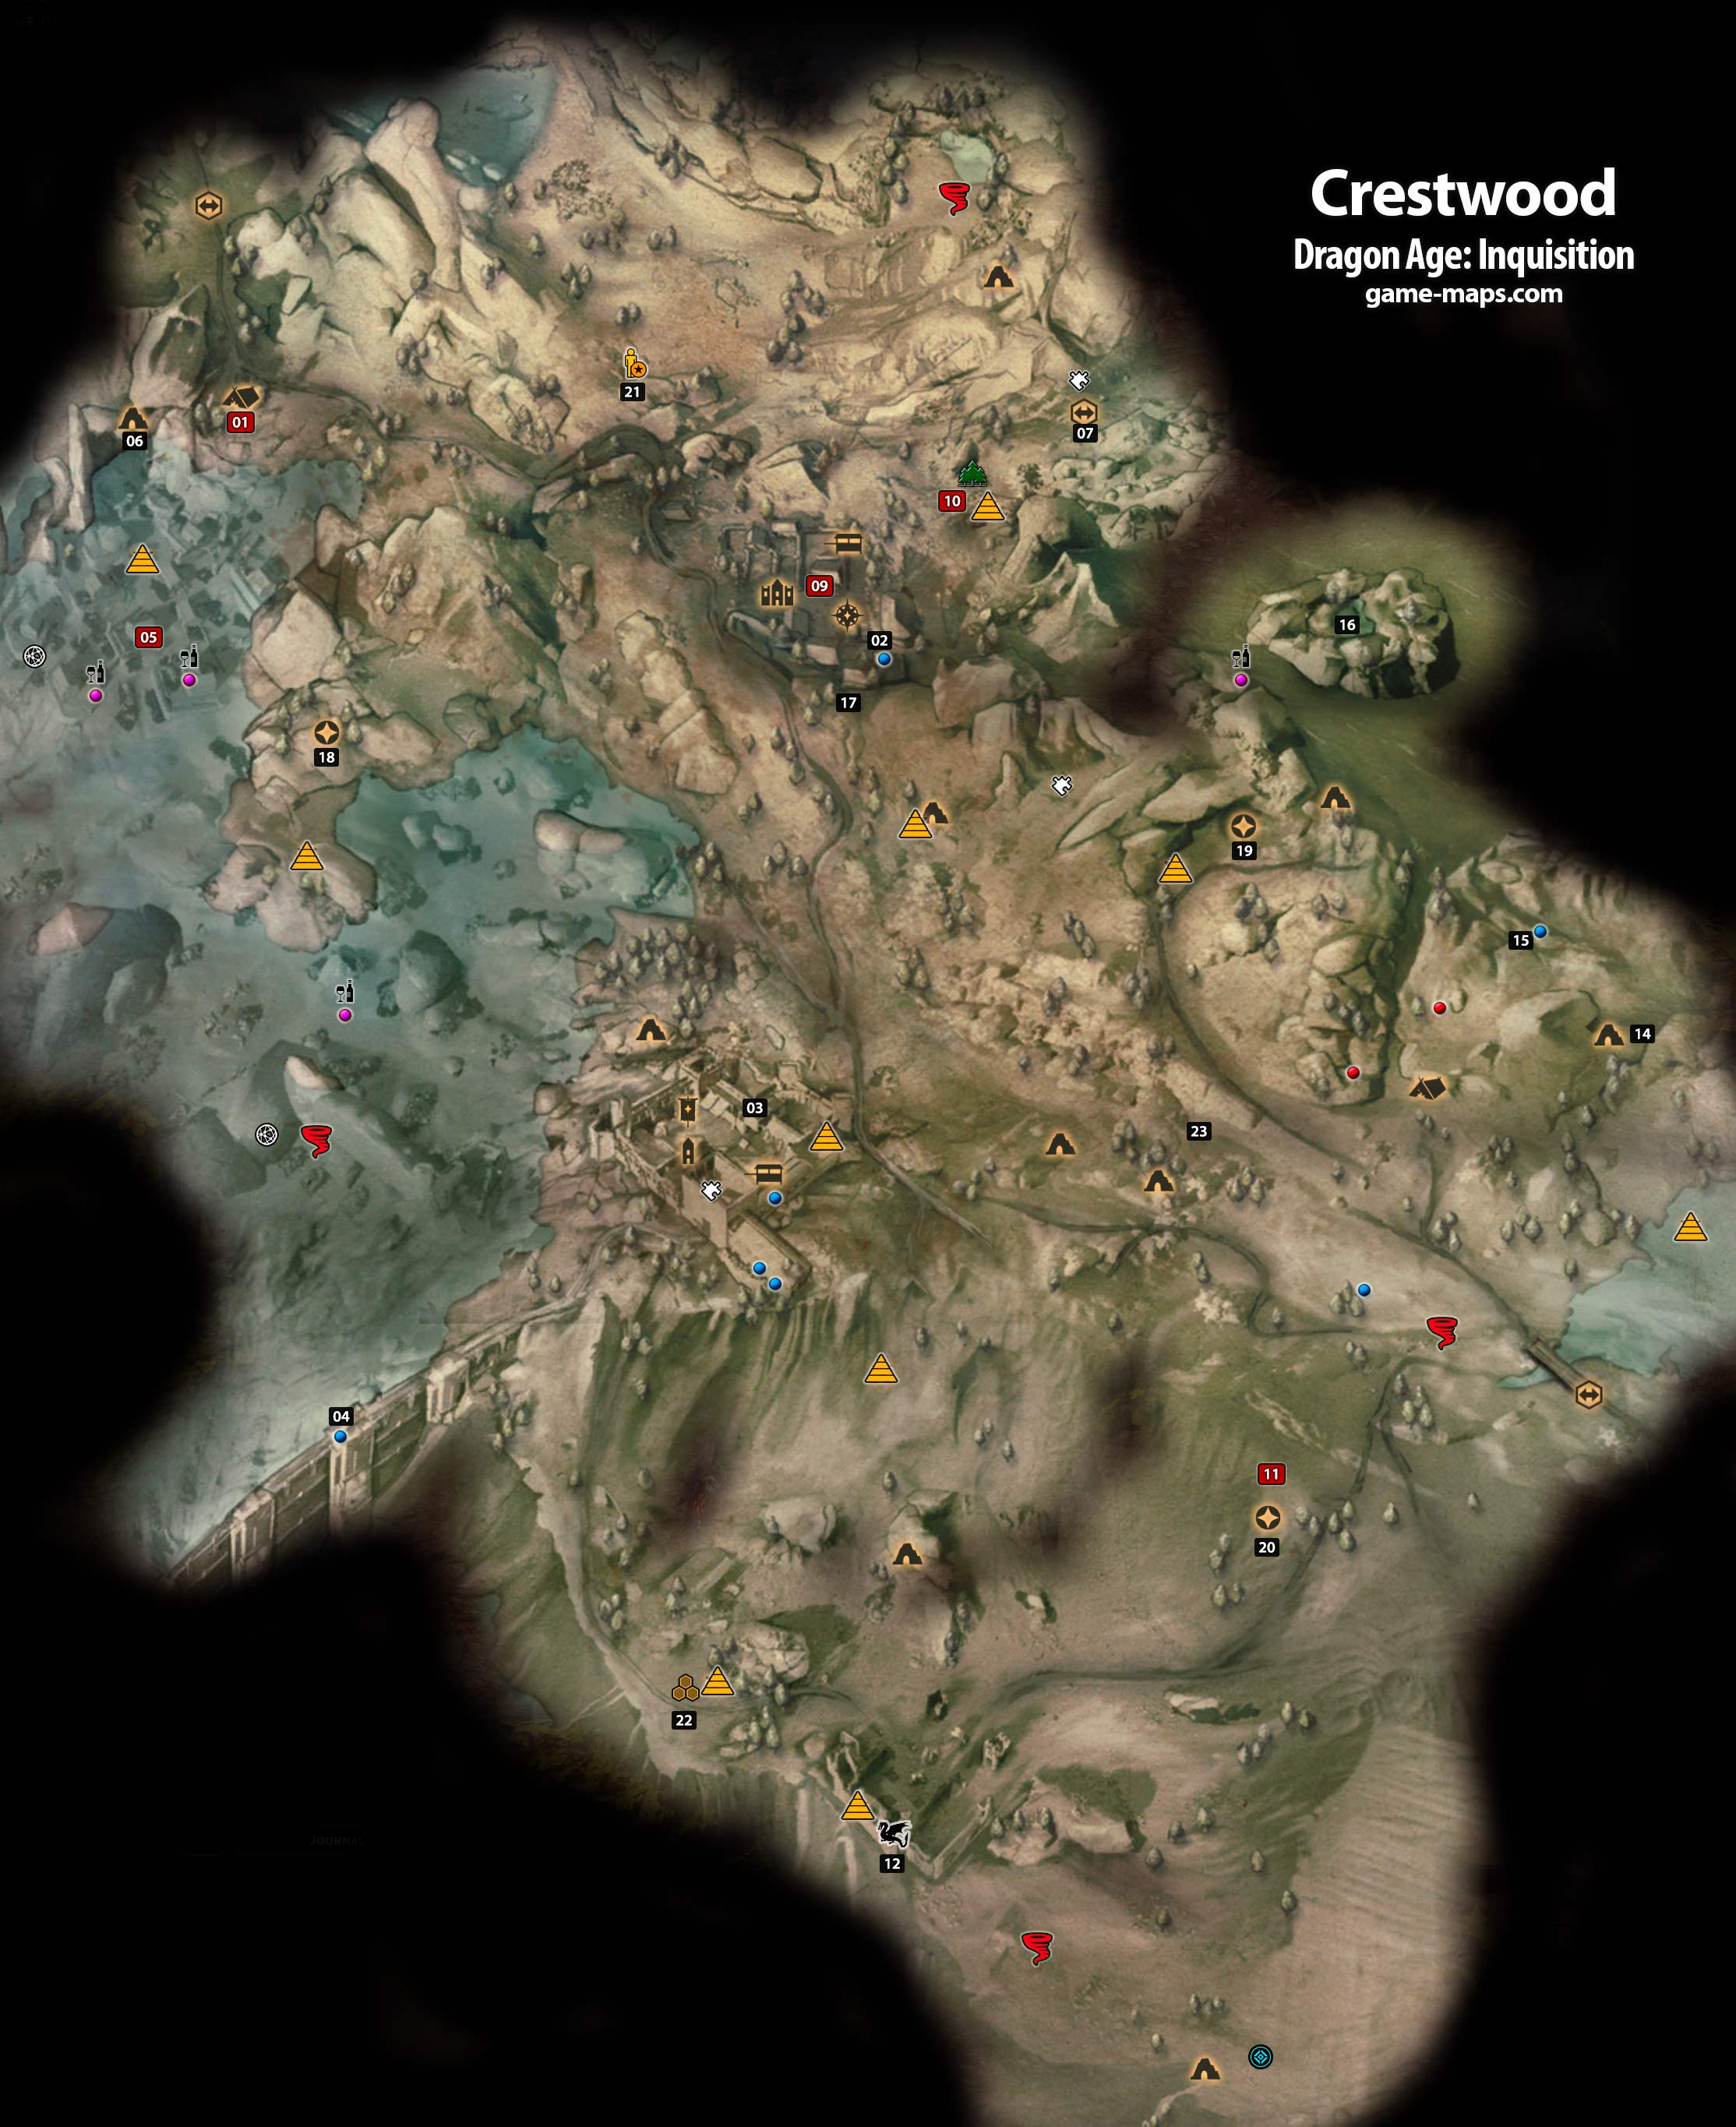 Crestwood dragon age inquisition walkthrough game guide amp maps